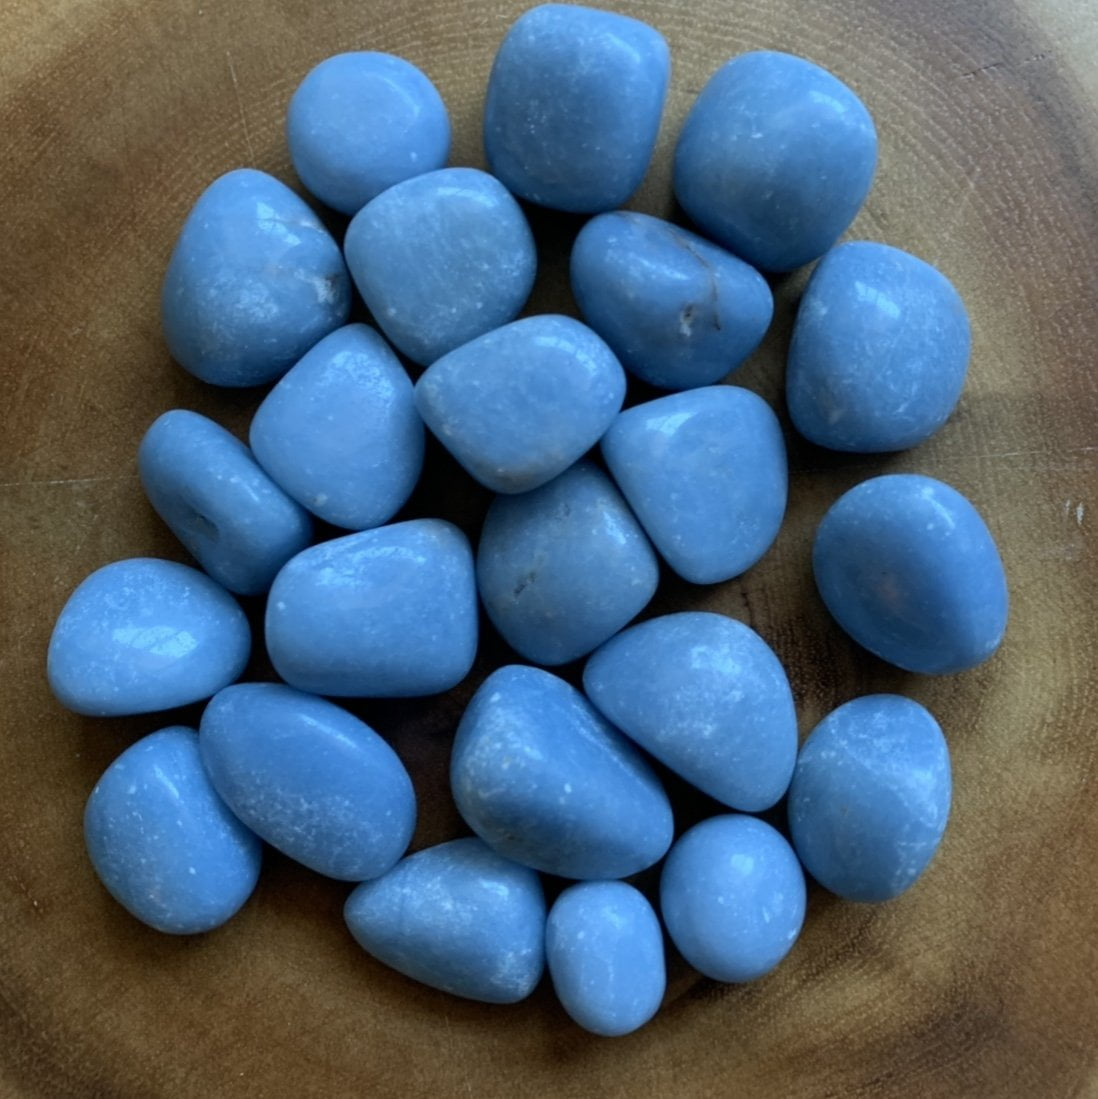 Angelite Tumble Stones - 13 stones, 1 lb - Sparkle Rock Pop